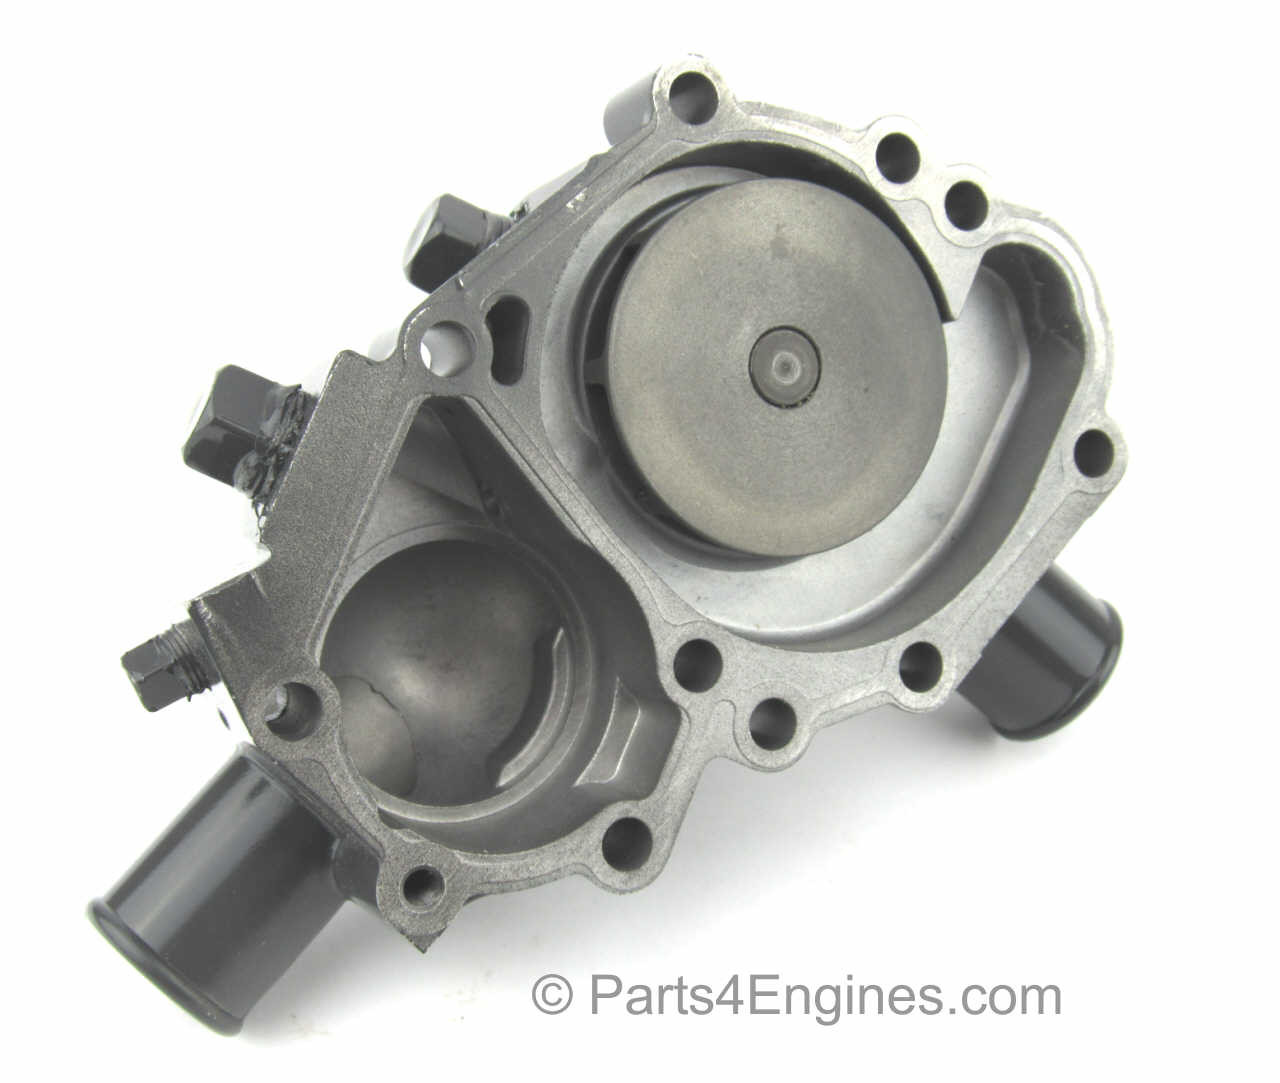 Perkins Perama M25 Water Pump - parts4engines.com